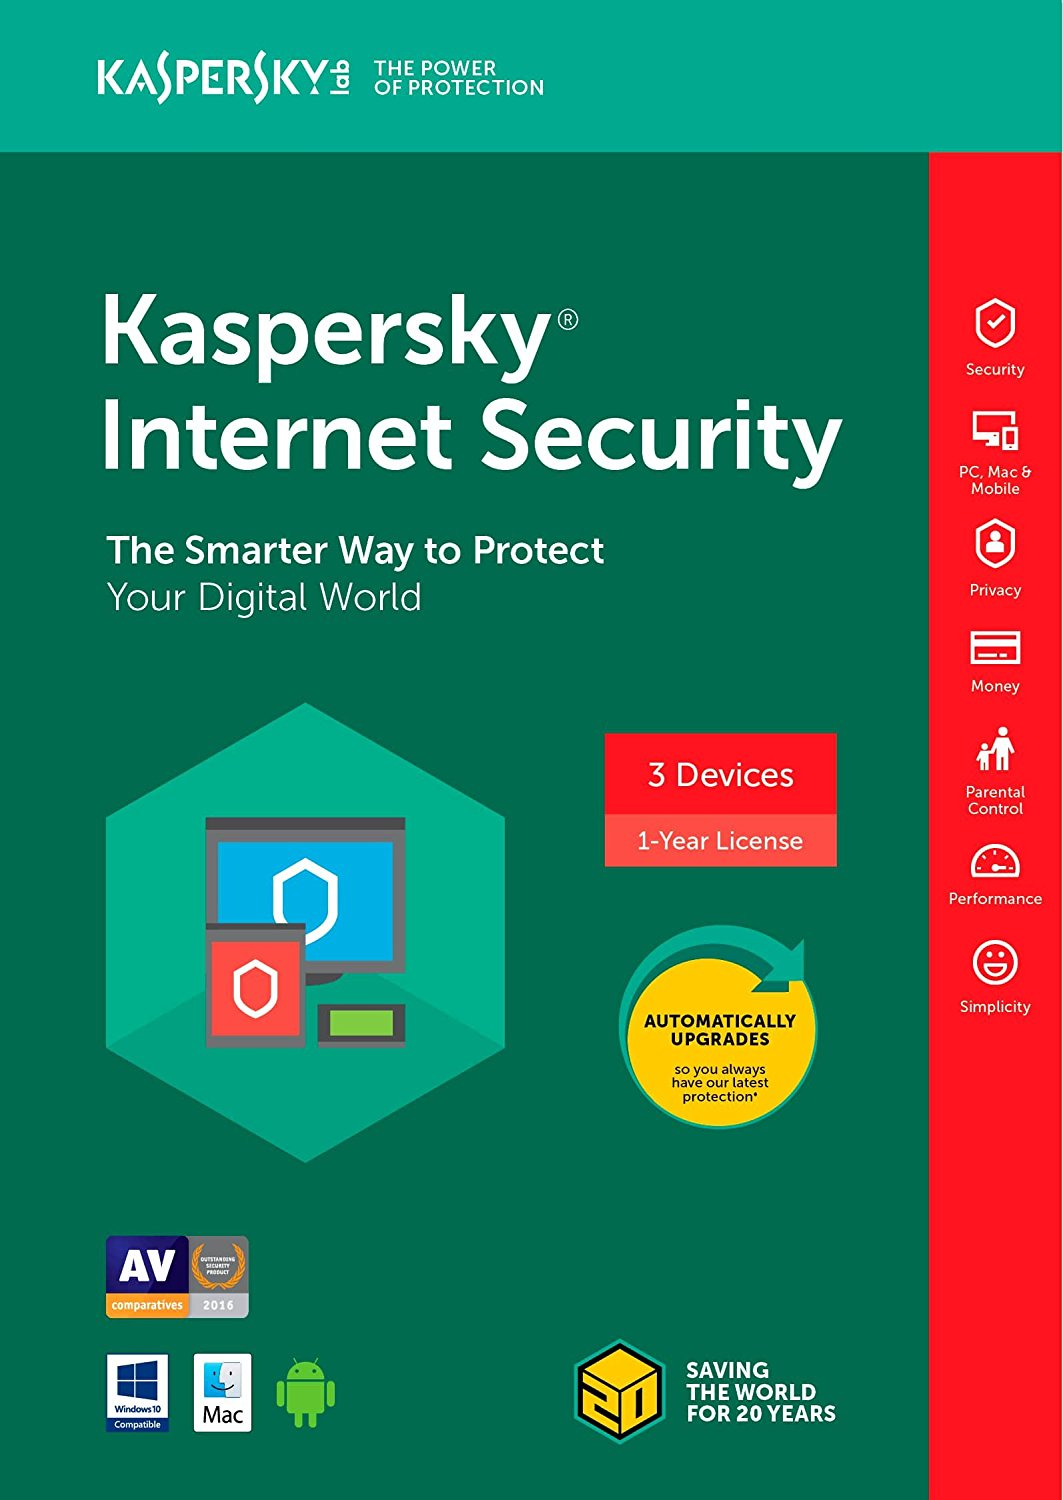 KASPERSKY AntiVirus_Most Trusted AntiVirus Products of 2018